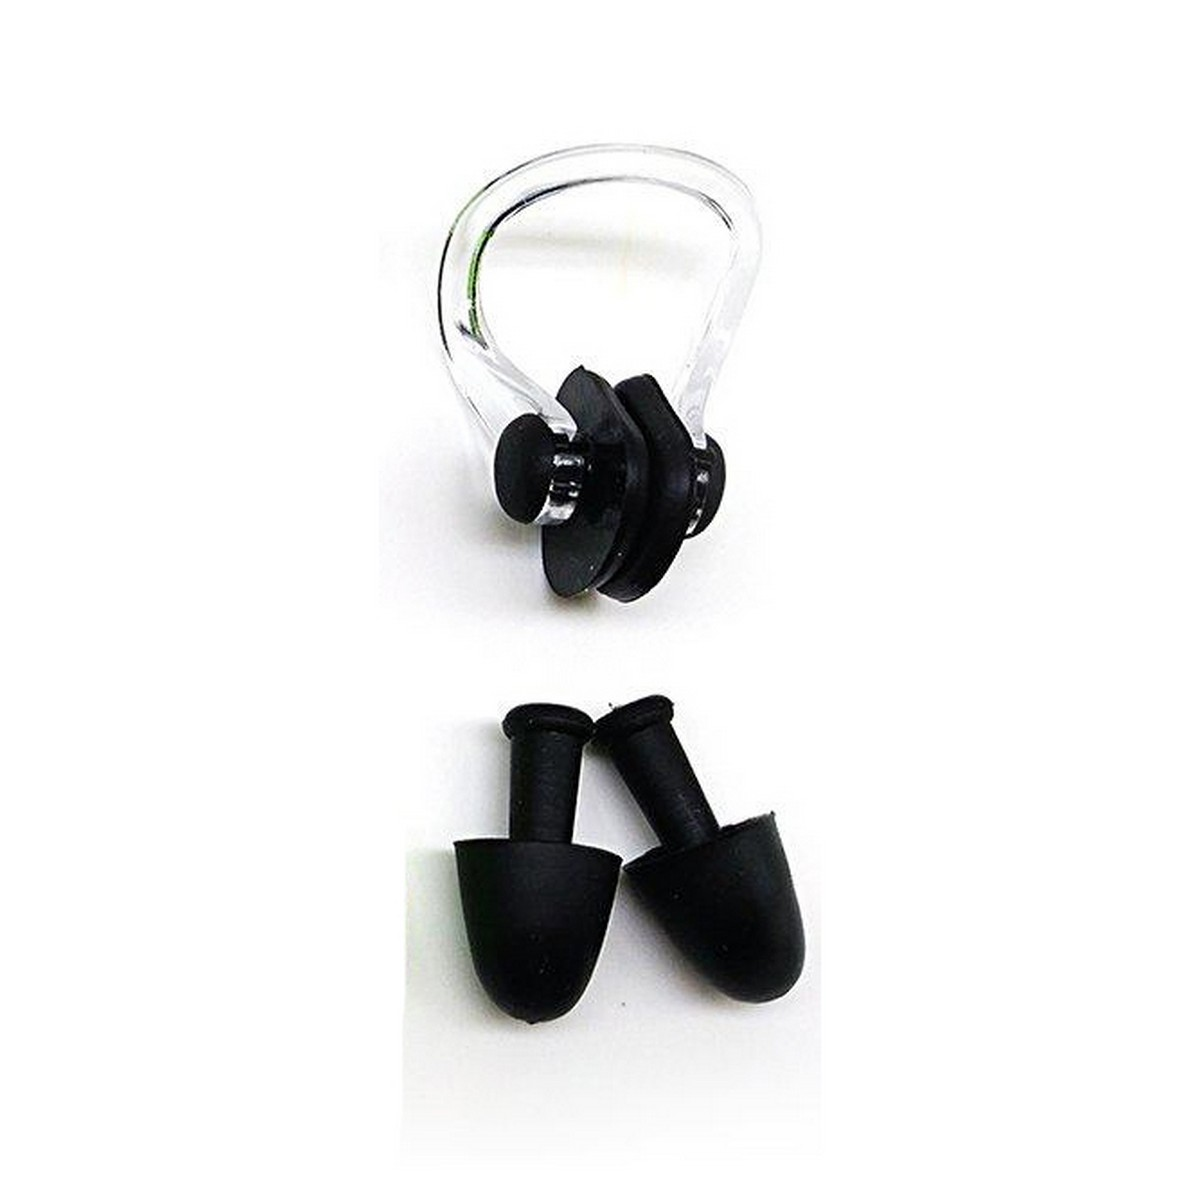 Soft Silicone Swimming Set Waterproof Nose Clip + Ear Plug Set